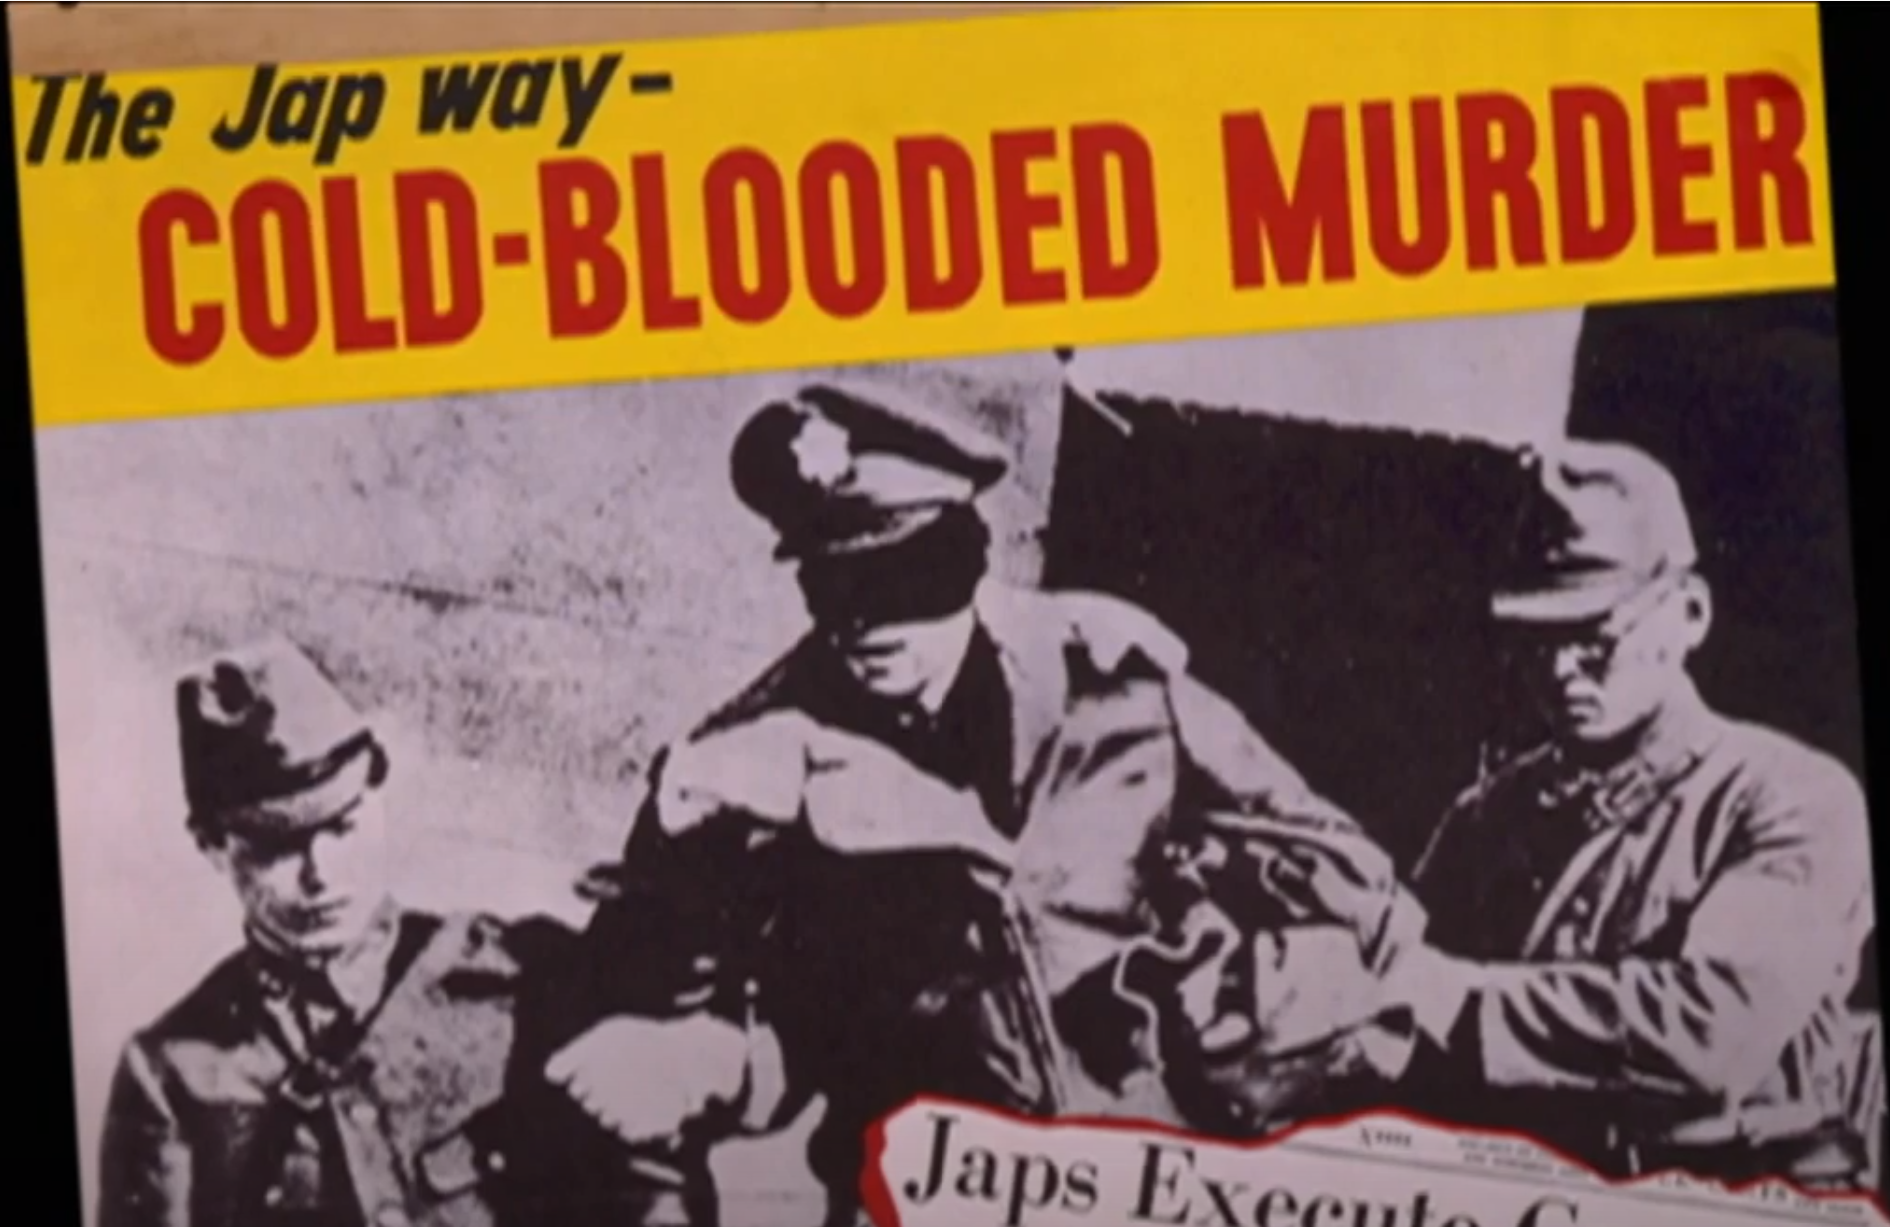 propaganda about Japan during WWII, which influenced opinions in Oregon